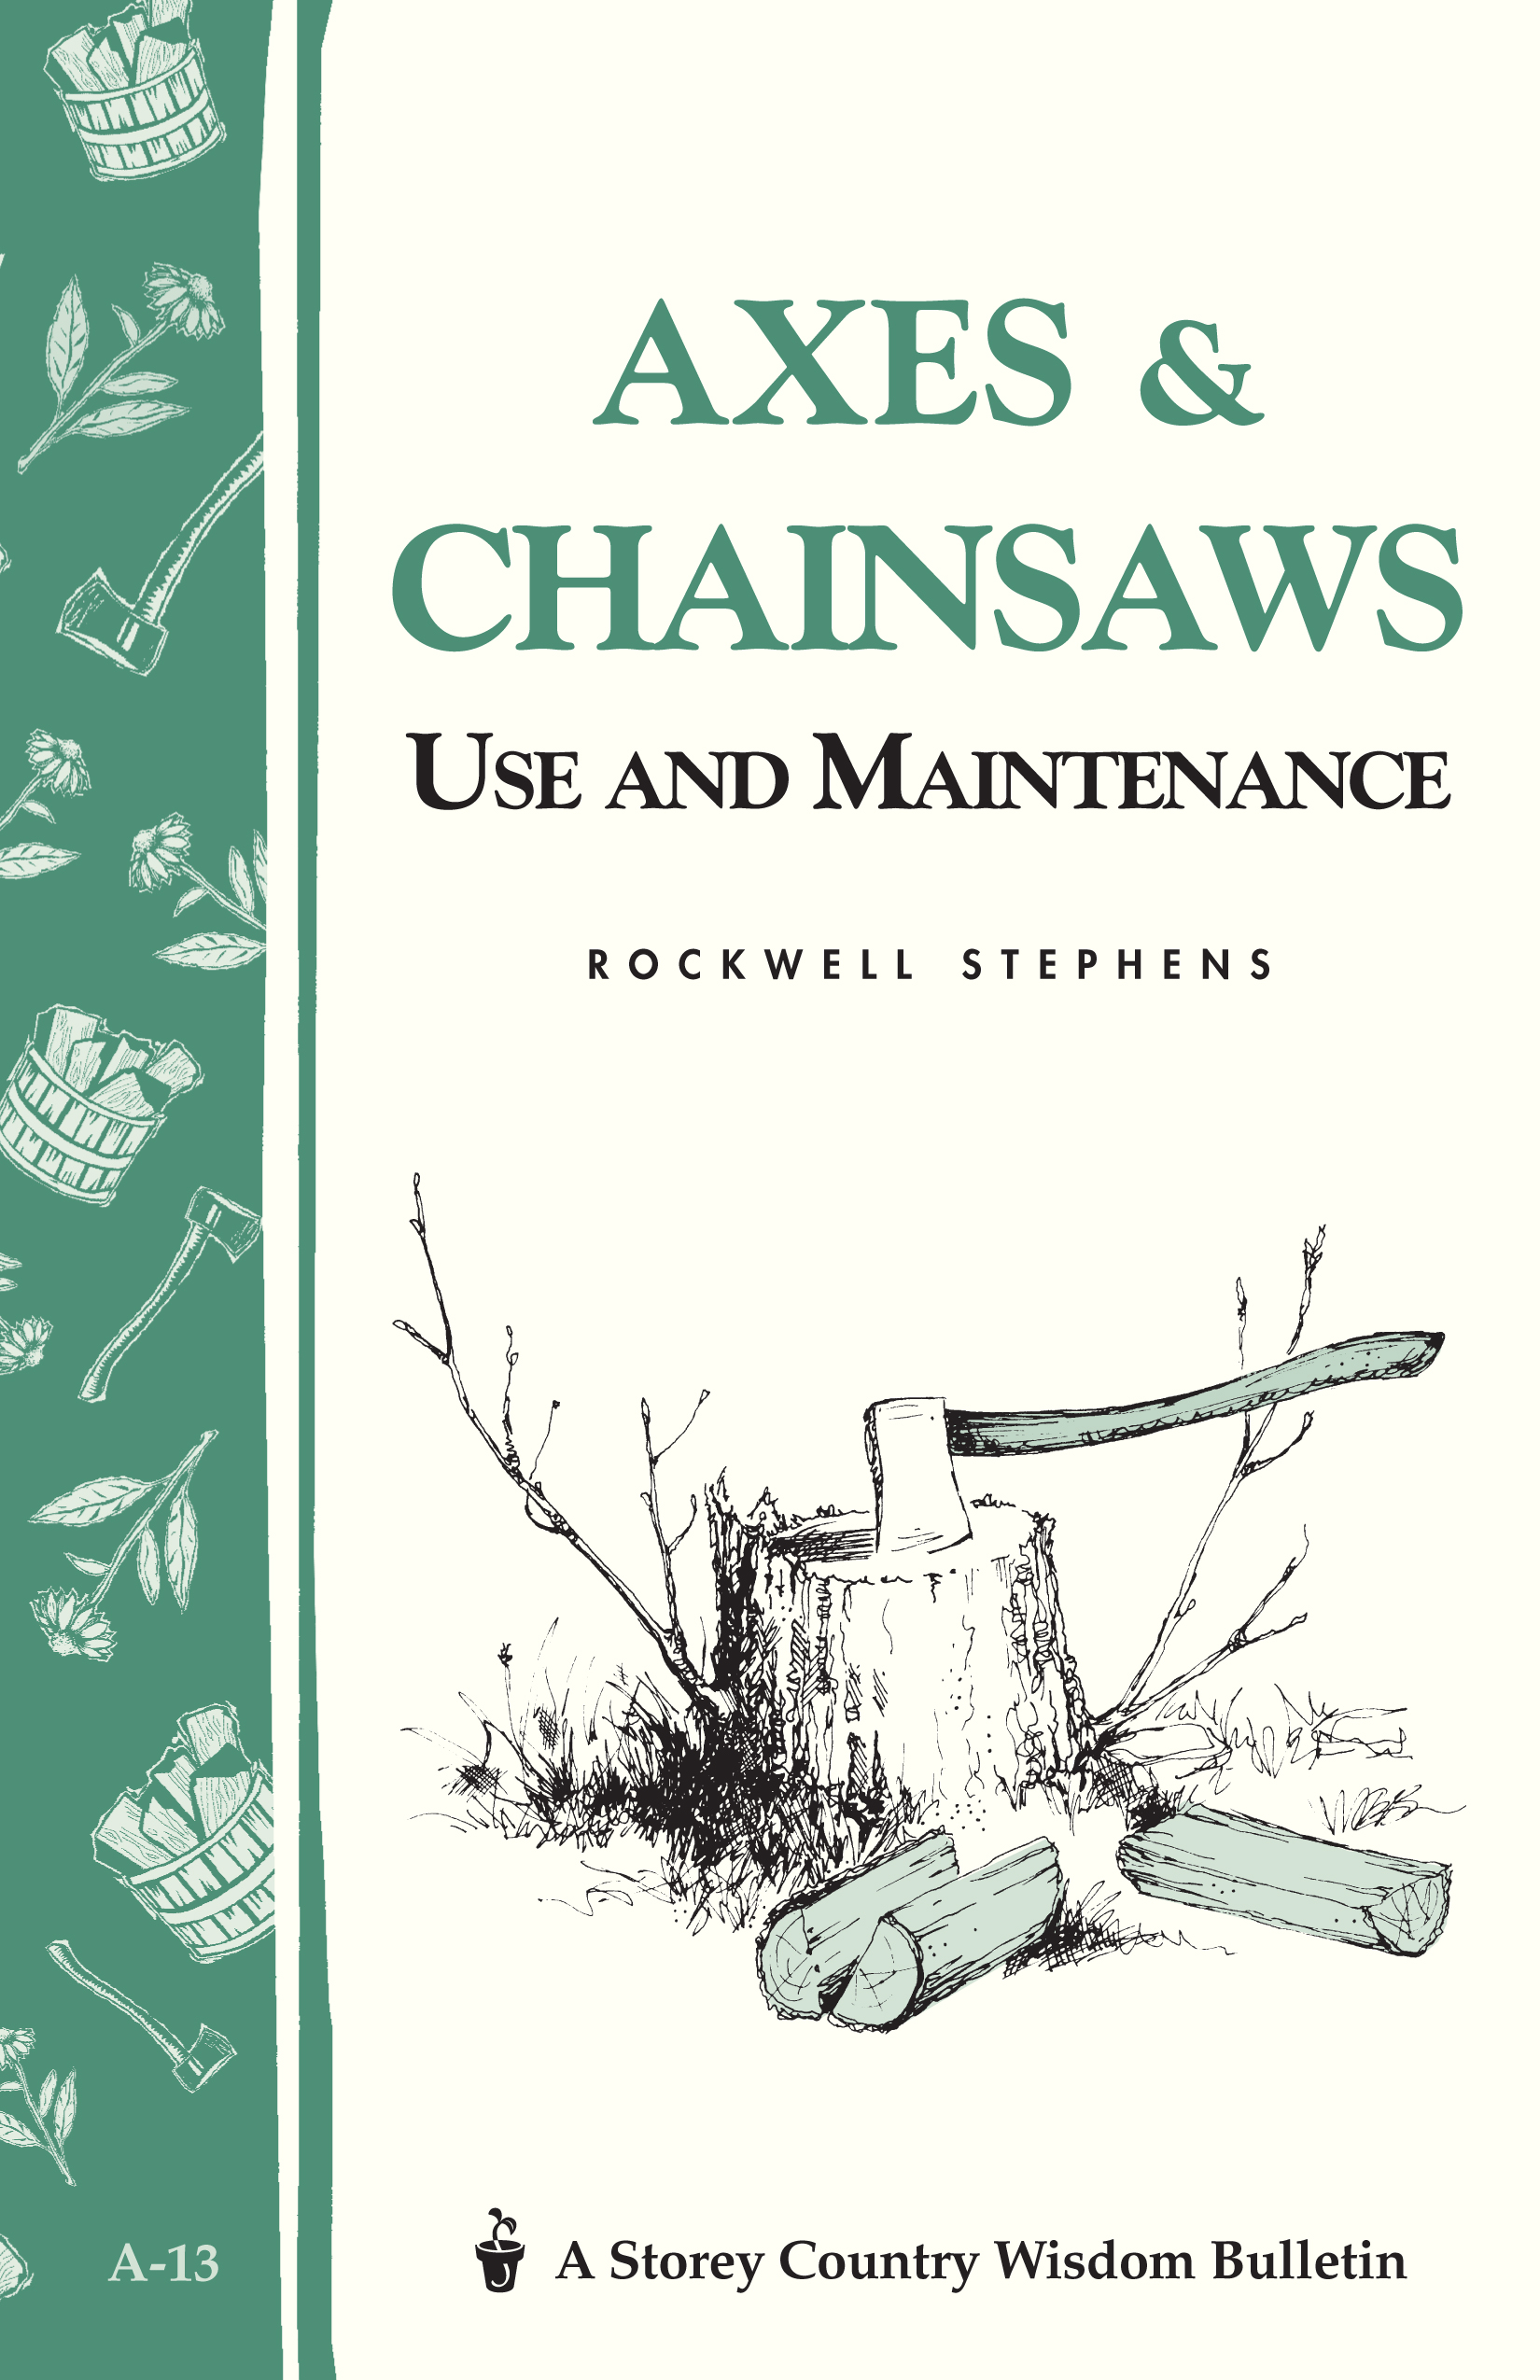 Axes & Chainsaws Use and Maintenance / A Storey Country Wisdom Bulletin  A-13 - Rockwell Stephens